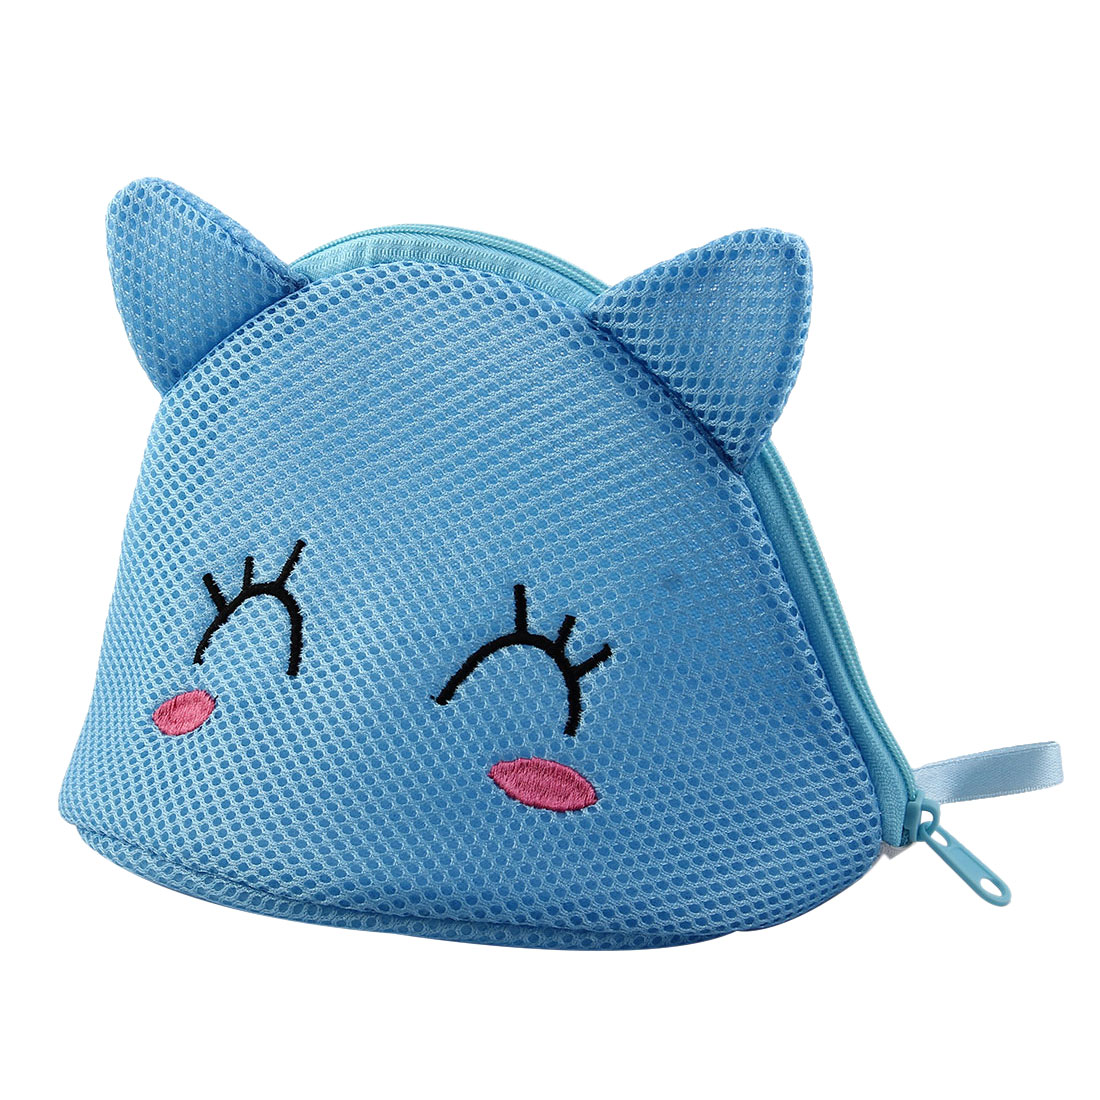 Home Polyester Cat Shape Clothes Underwear Lingerie Holder Washing Cleaning Bag